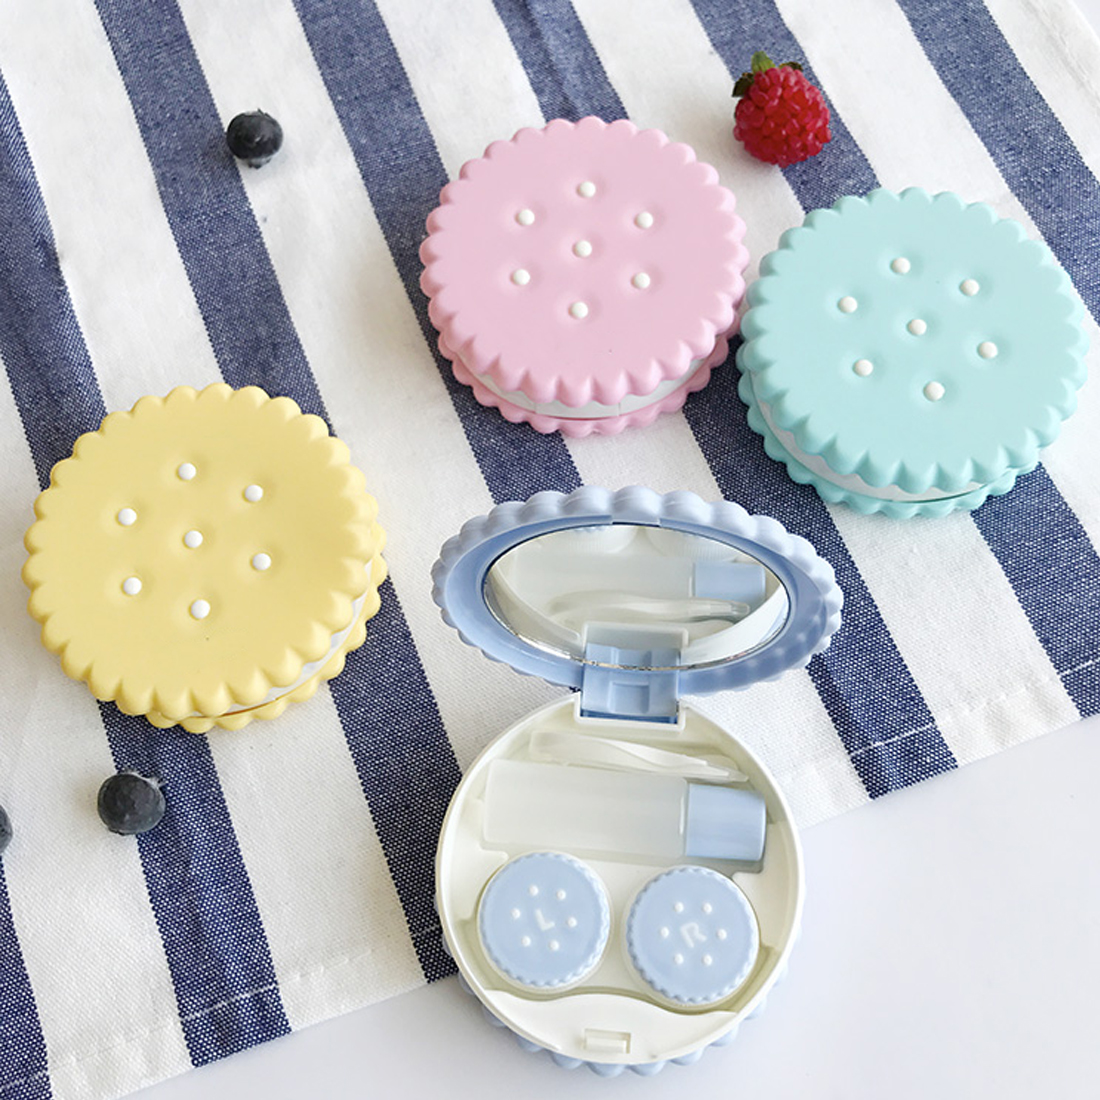 Lovely Special Cookies Shape Lens Case Mini Travel Cartoon Contact Lens Portable Pocket Case Box Container Travel Kit Holder